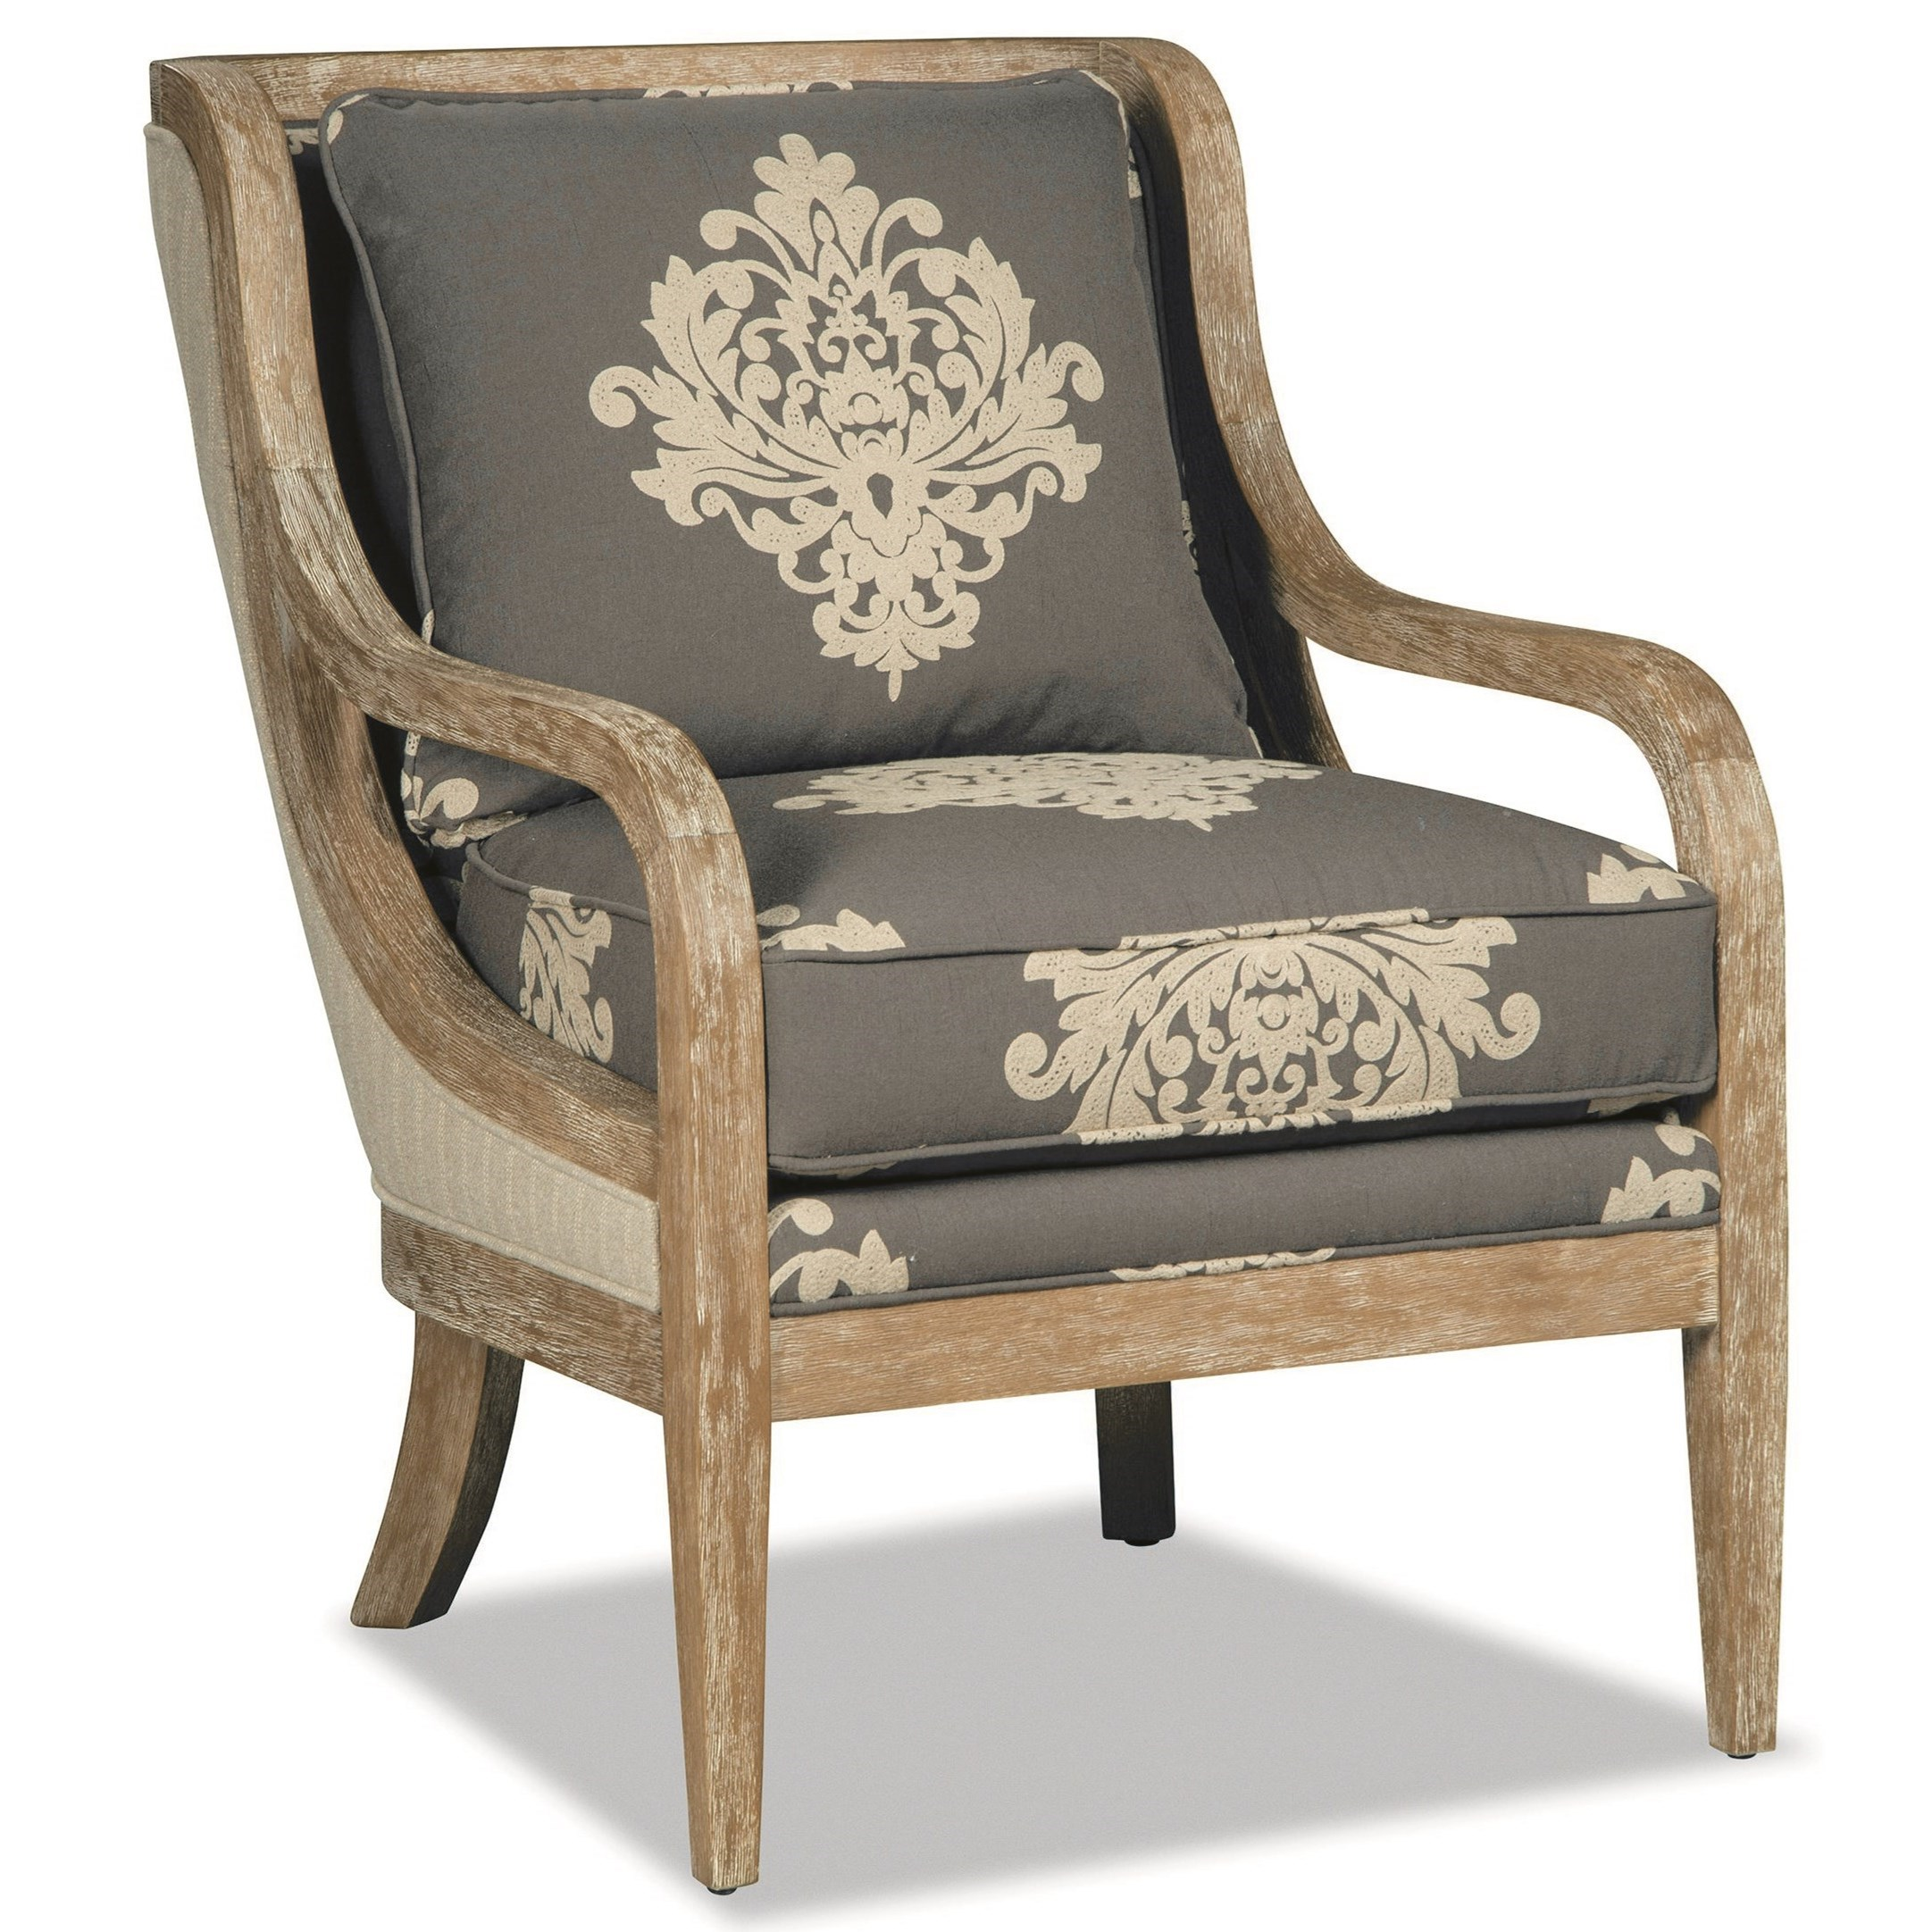 067510BD Accent Chair by Craftmaster at VanDrie Home Furnishings